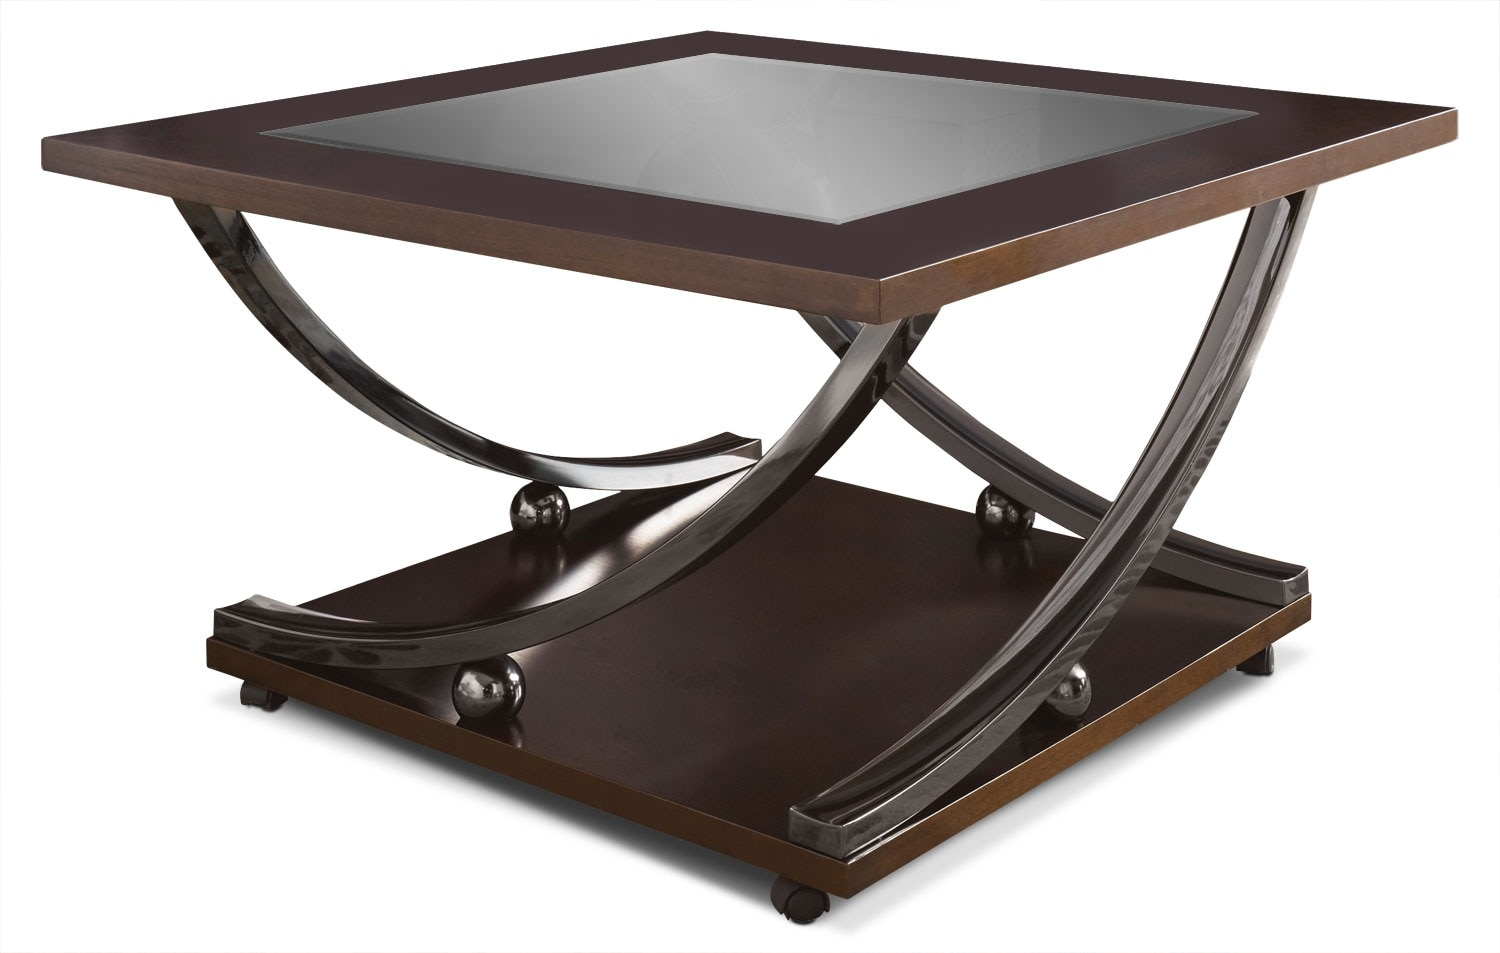 Rollins Coffee Table with Casters